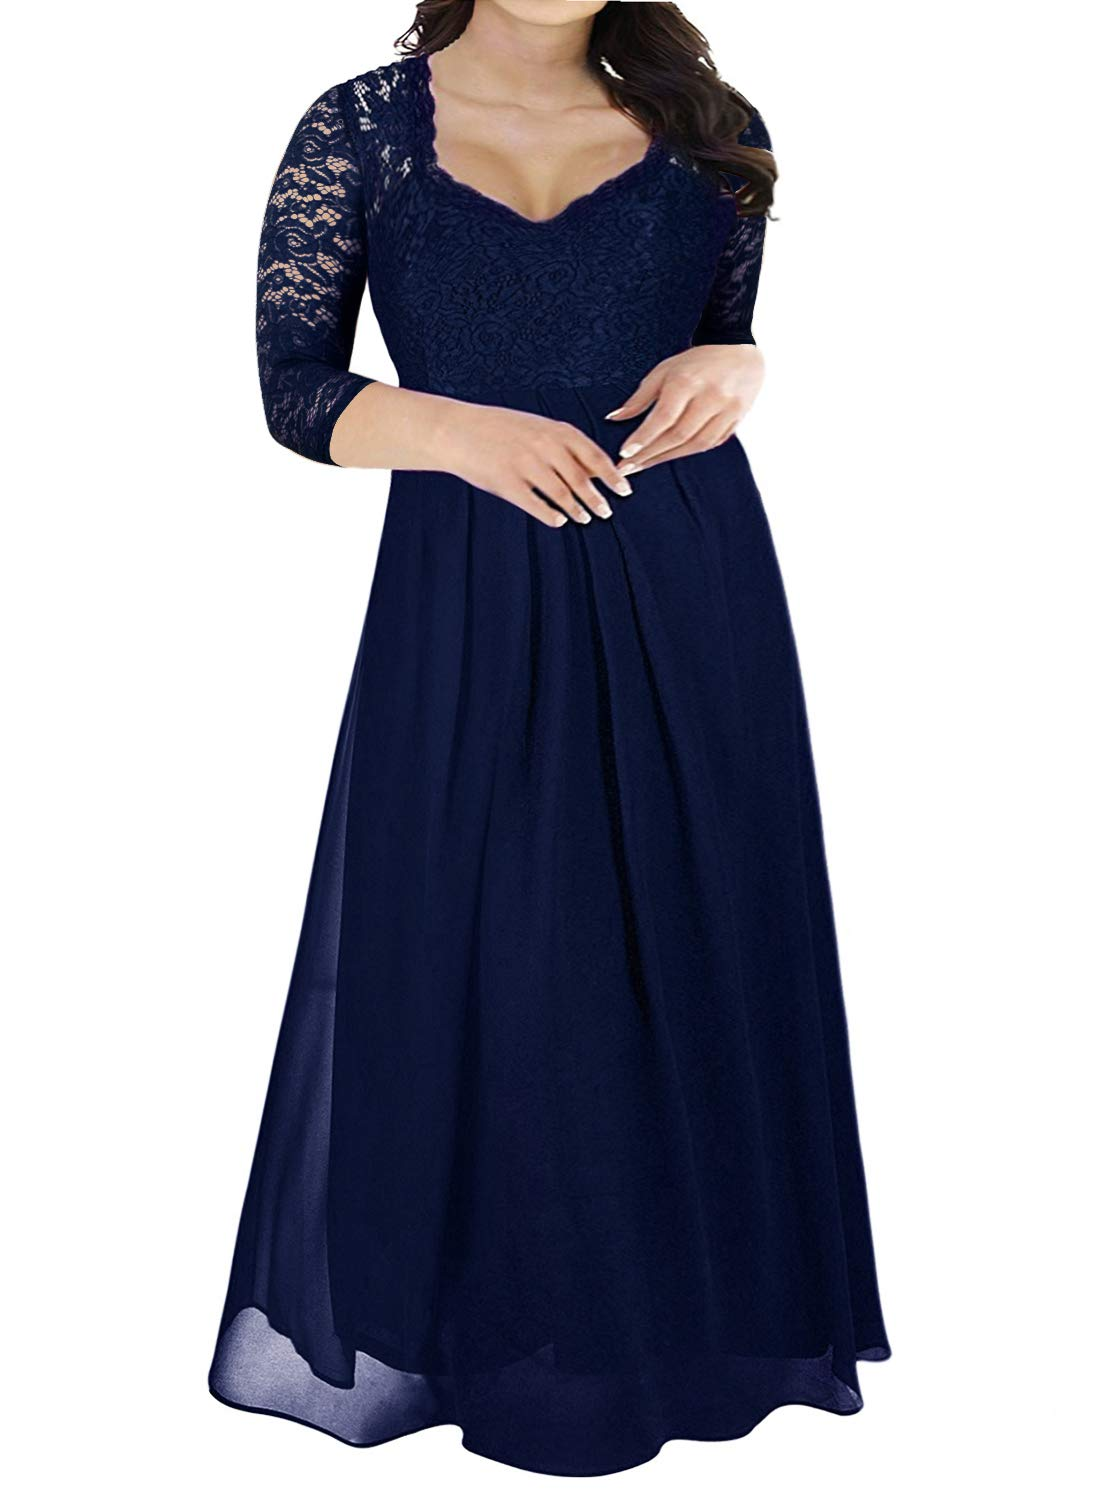 Plus Size Dresses - Womens Floral Lace 2/3 Sleeves Maxi Dress Plus Size Evening Party Dress